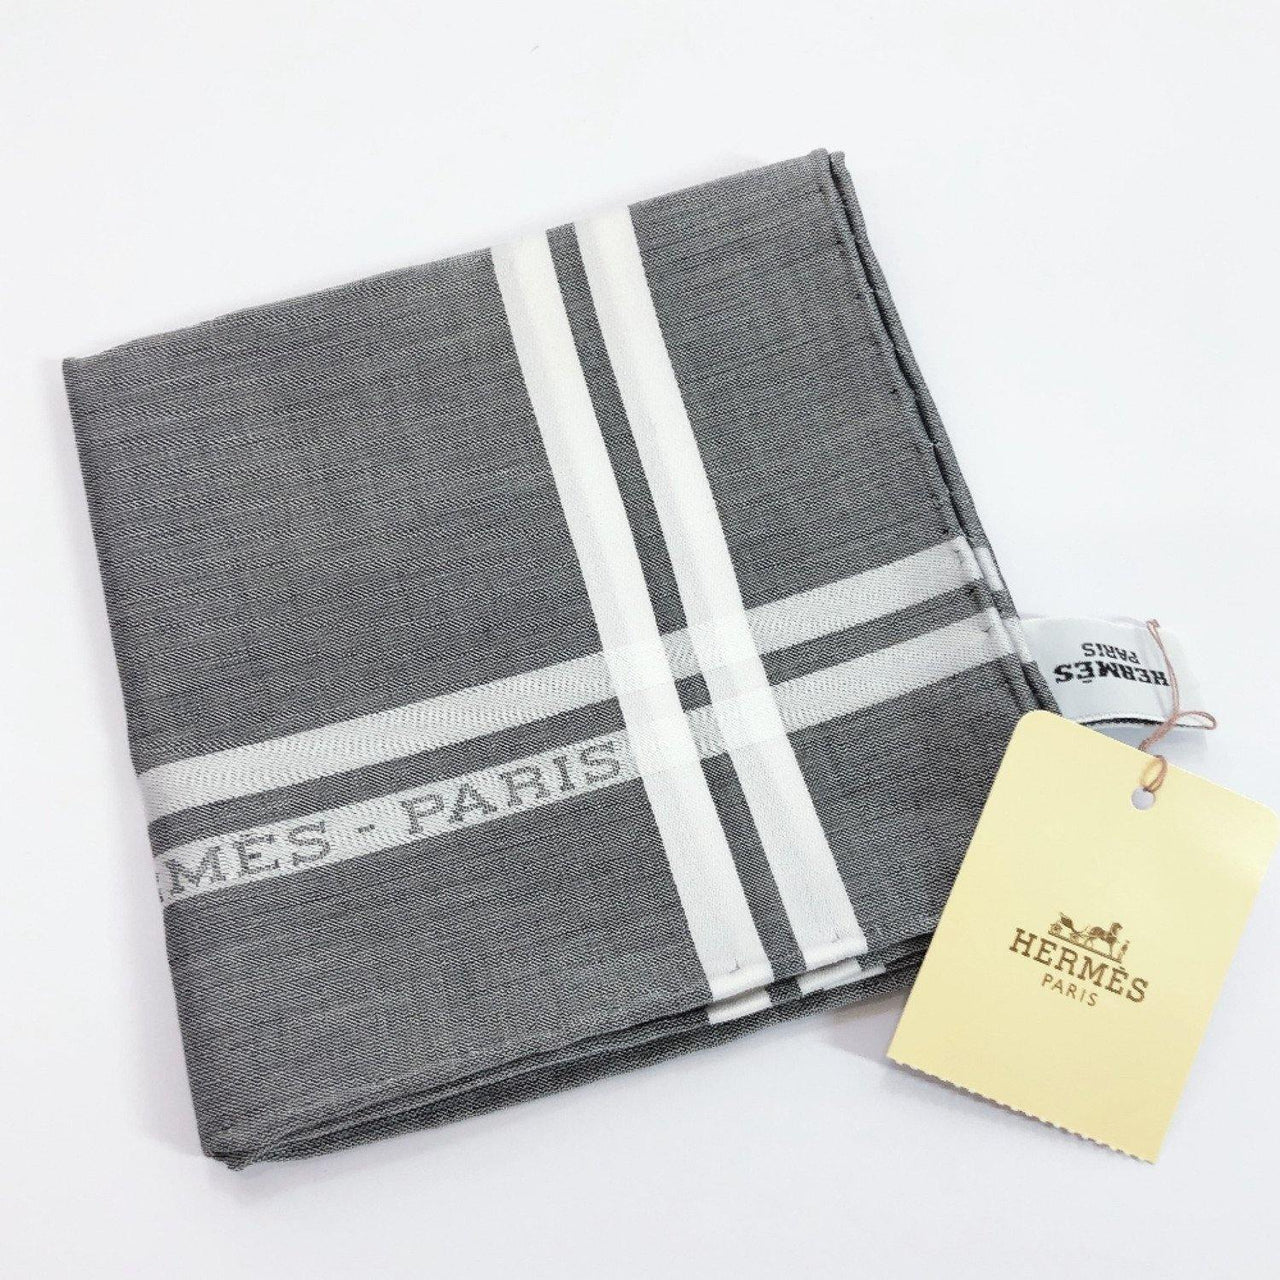 HERMES handkerchief Pocket chief cotton gray unisex New - JP-BRANDS.com